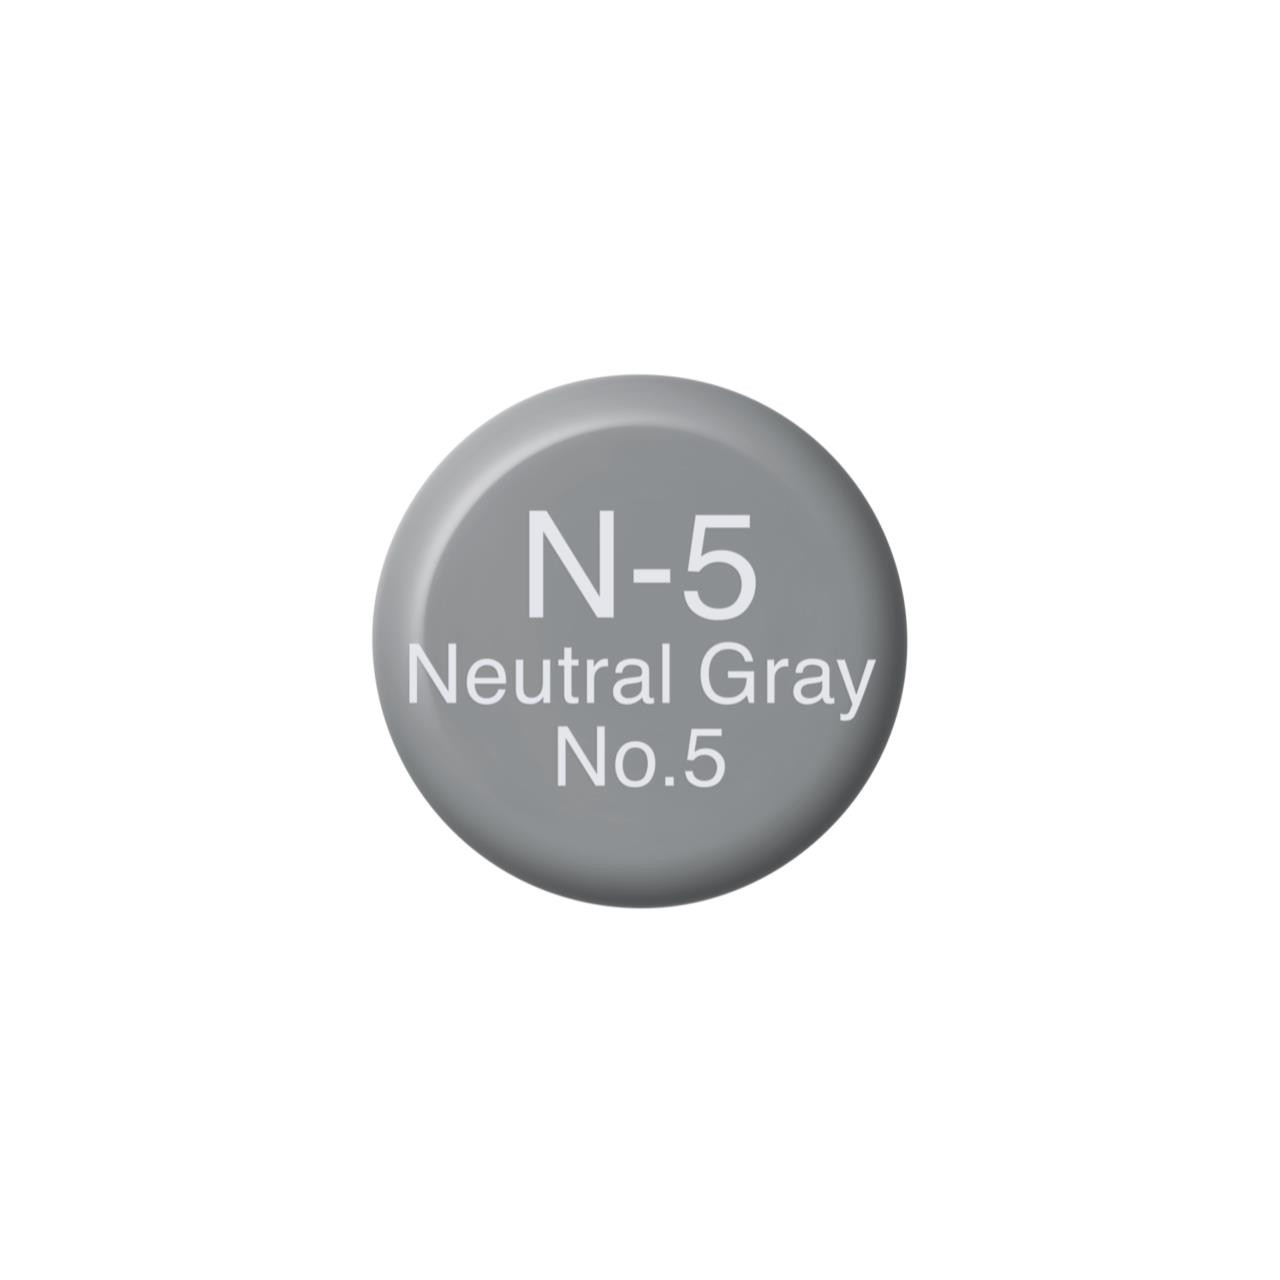 N5 Neutral Gray 5, Copic Ink - 4511338055489